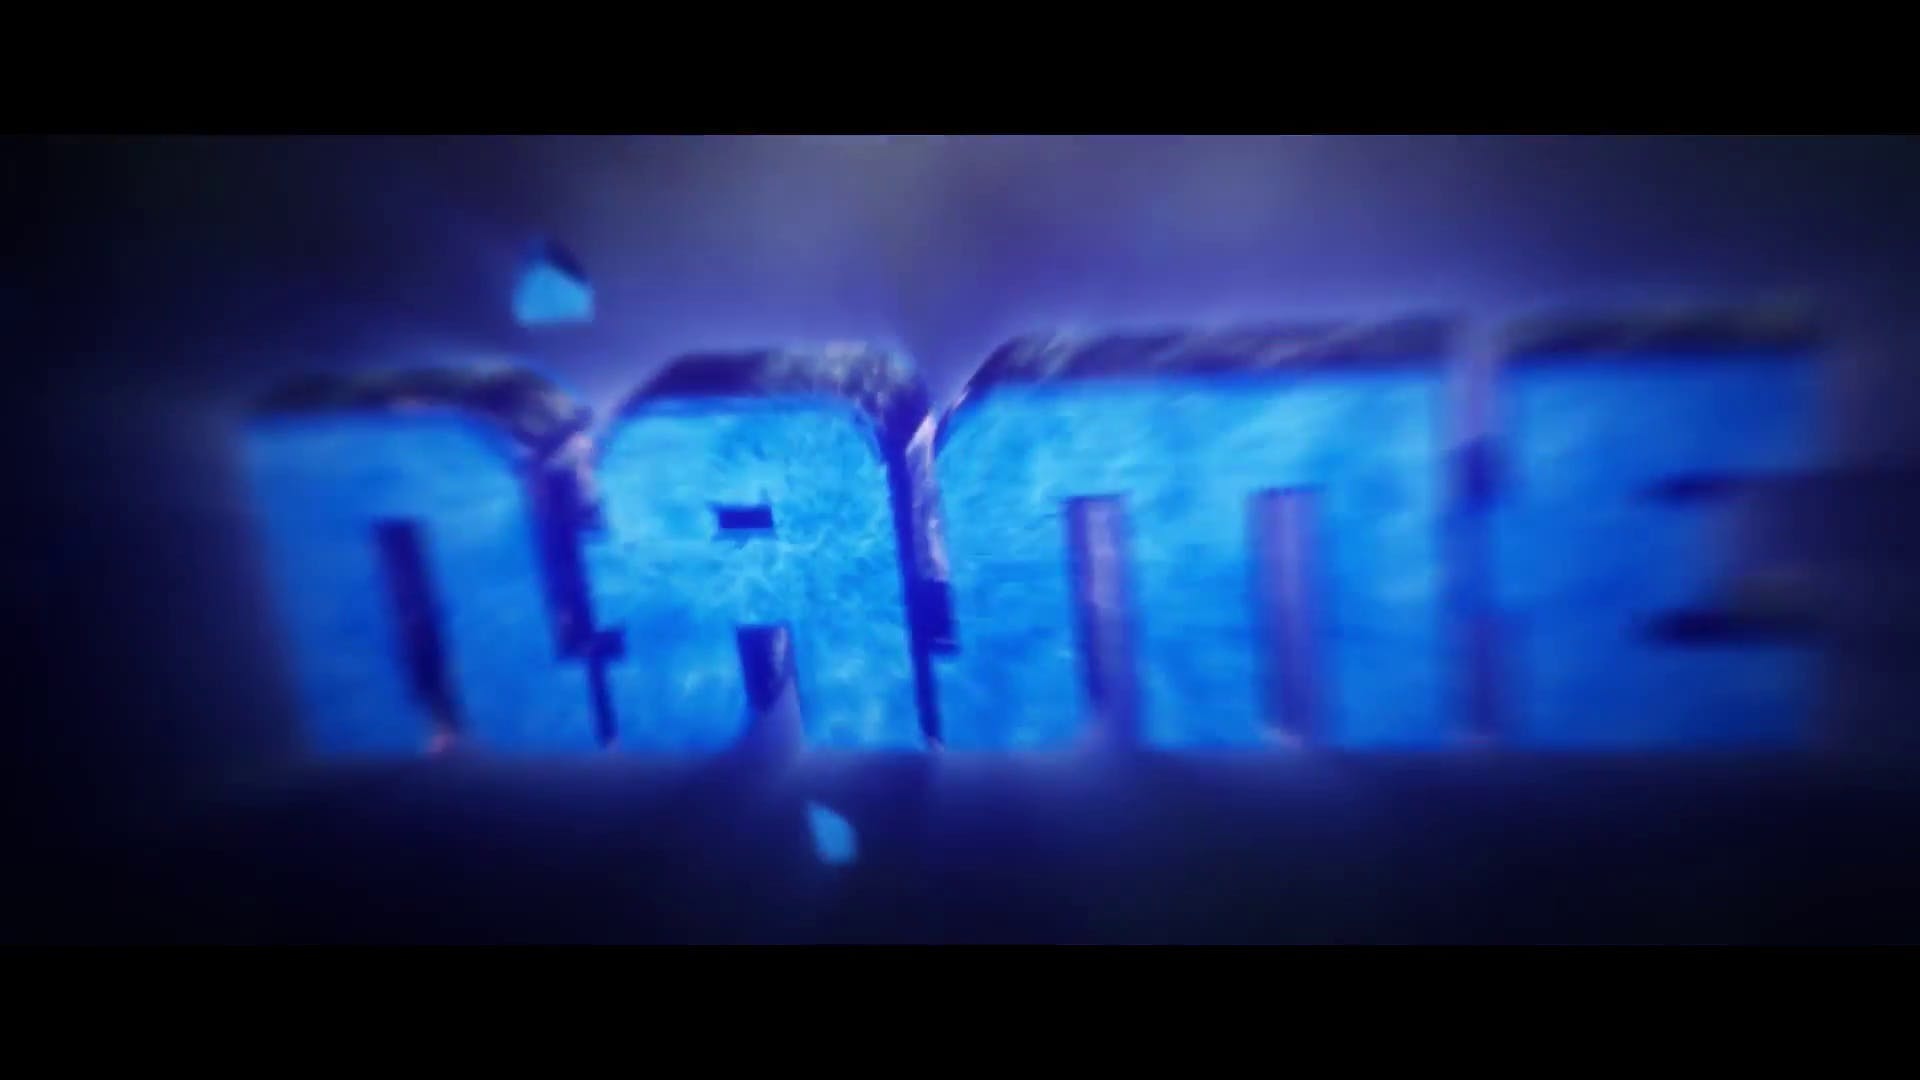 3D Shockwave Cinema 4D After Effects Intro Template w Tutorial